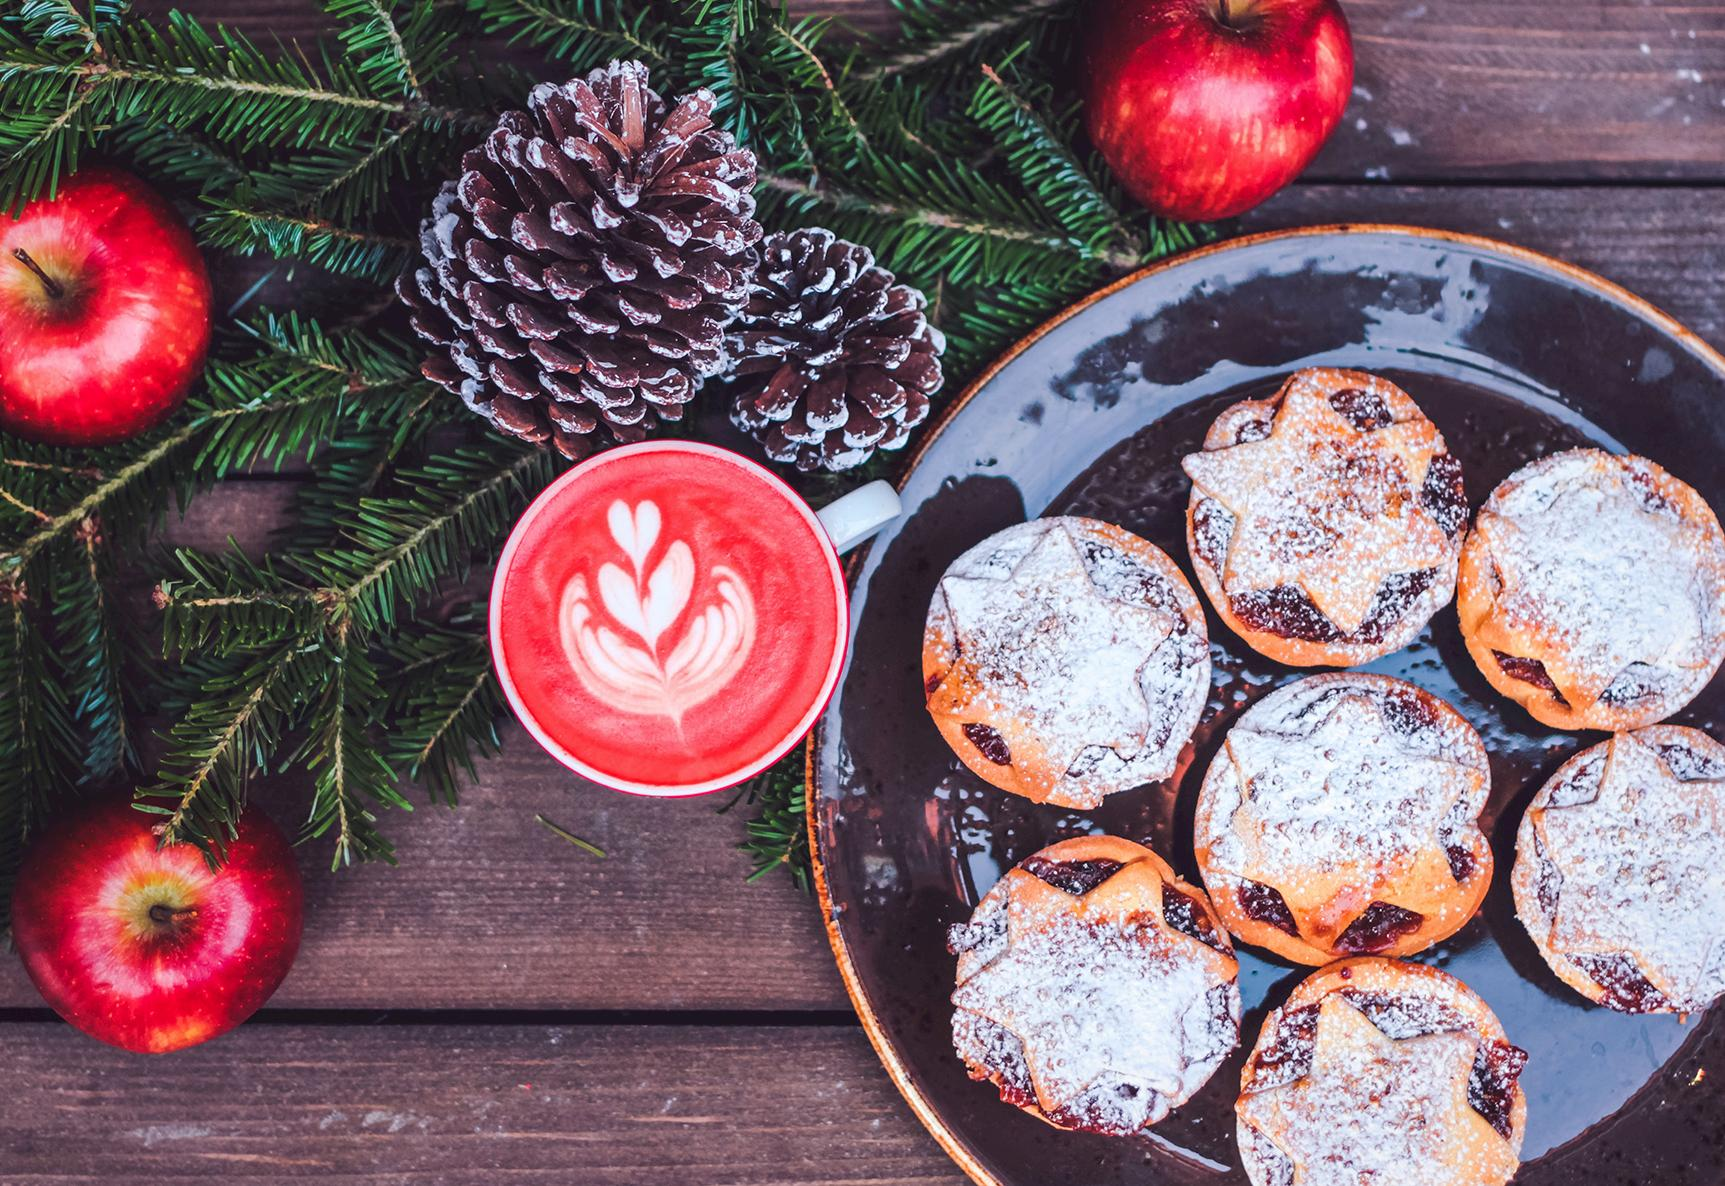 Is it illegal to eat mince pies on Christmas day?